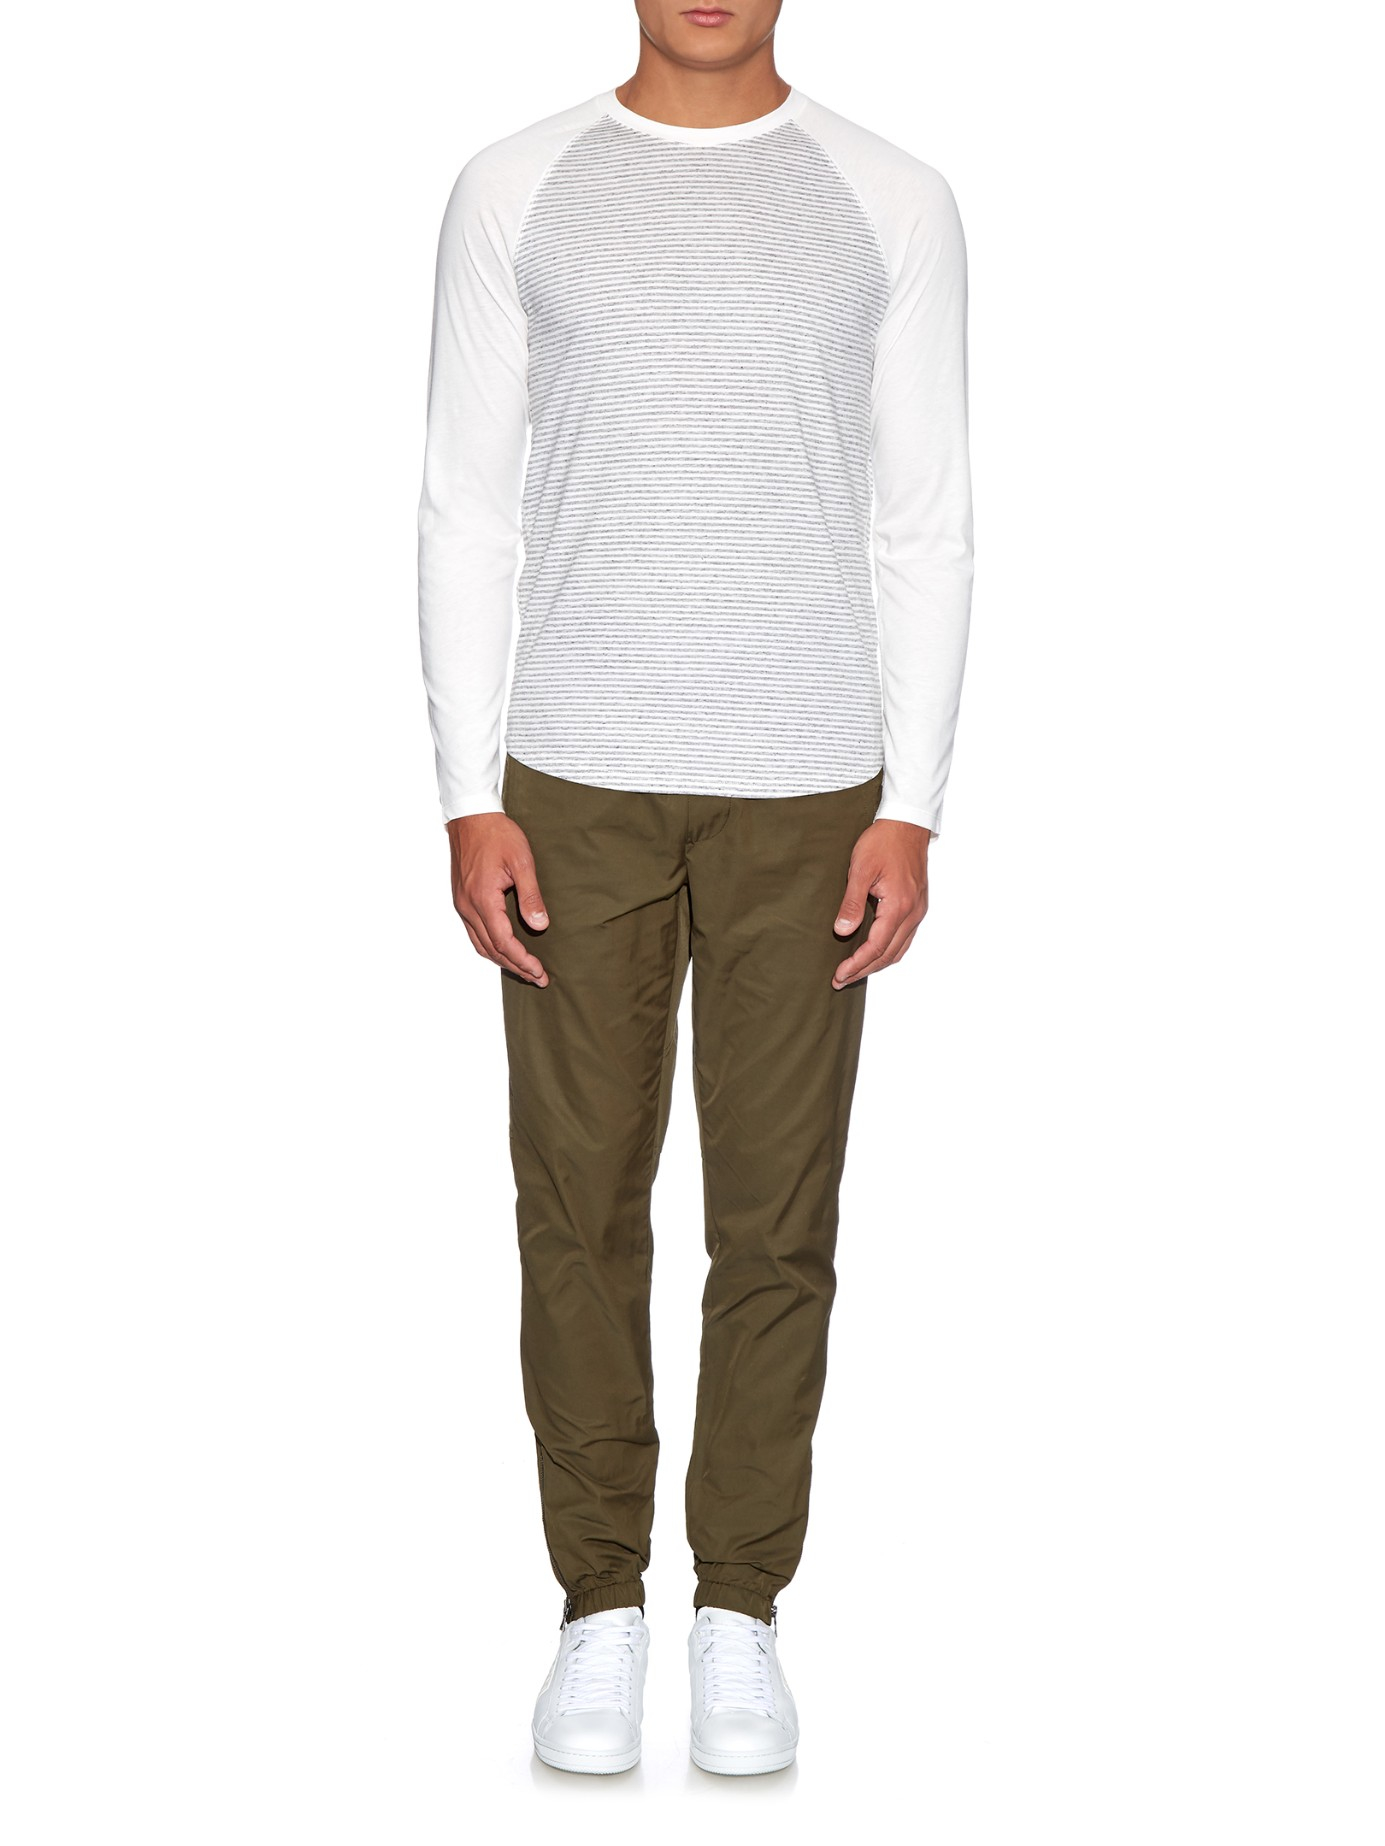 Lyst vince striped baseball t shirt in white for men for Vince tee shirts sale